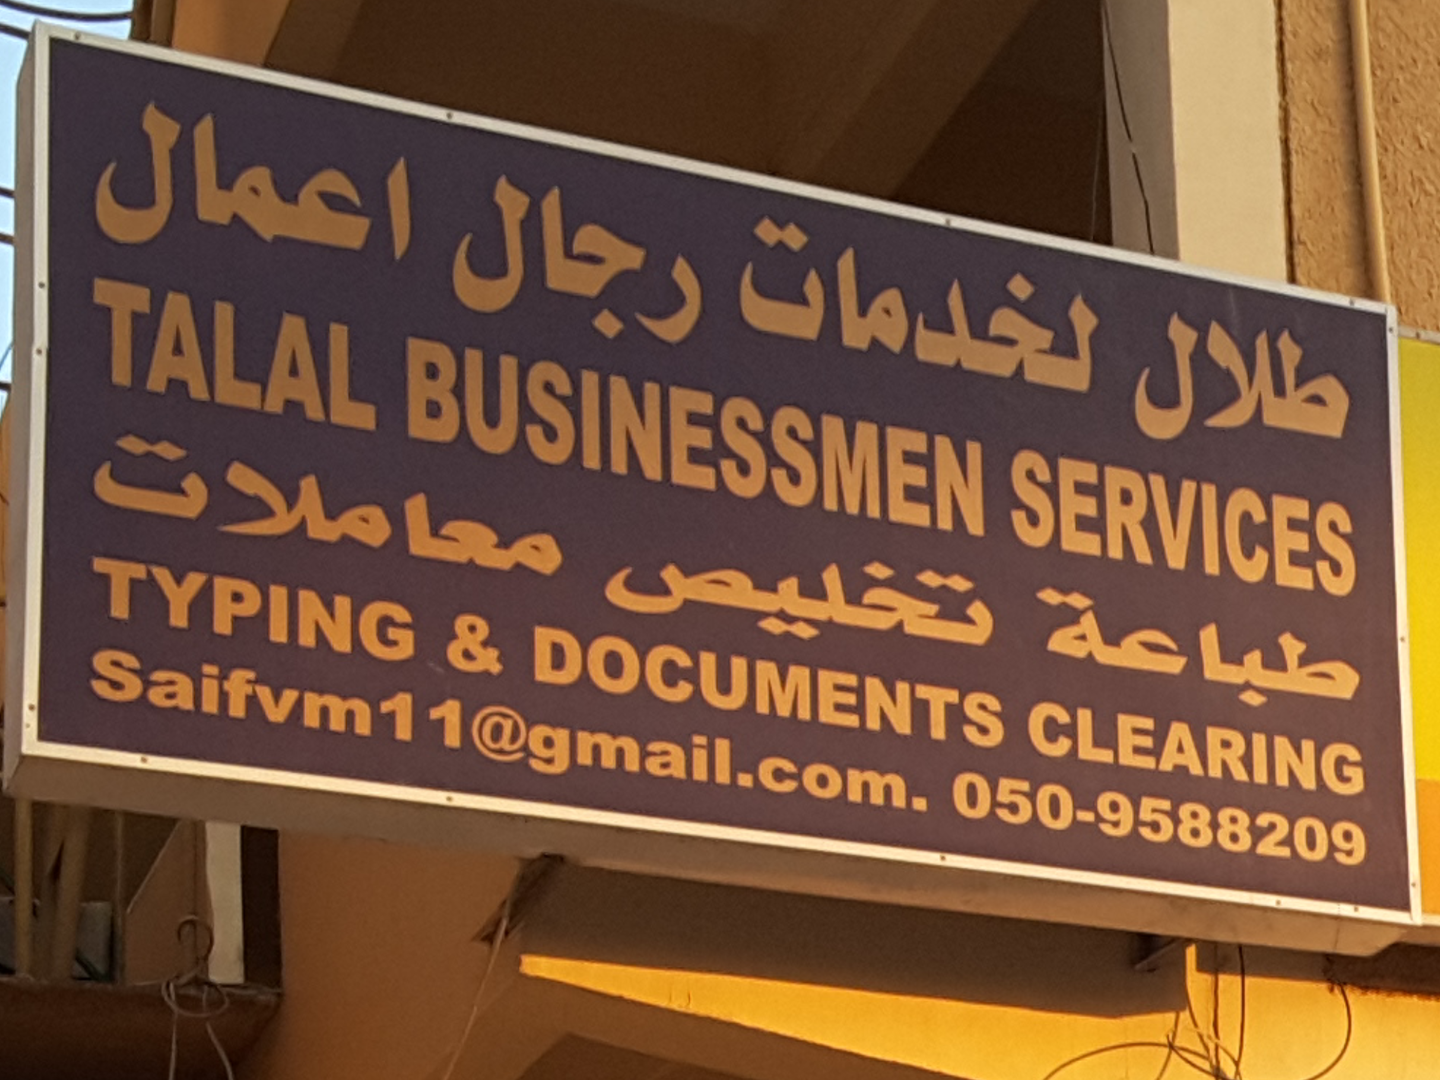 HiDubai-business-talal-businessmen-services-government-public-services-printing-typing-services-al-qusais-1-dubai-2